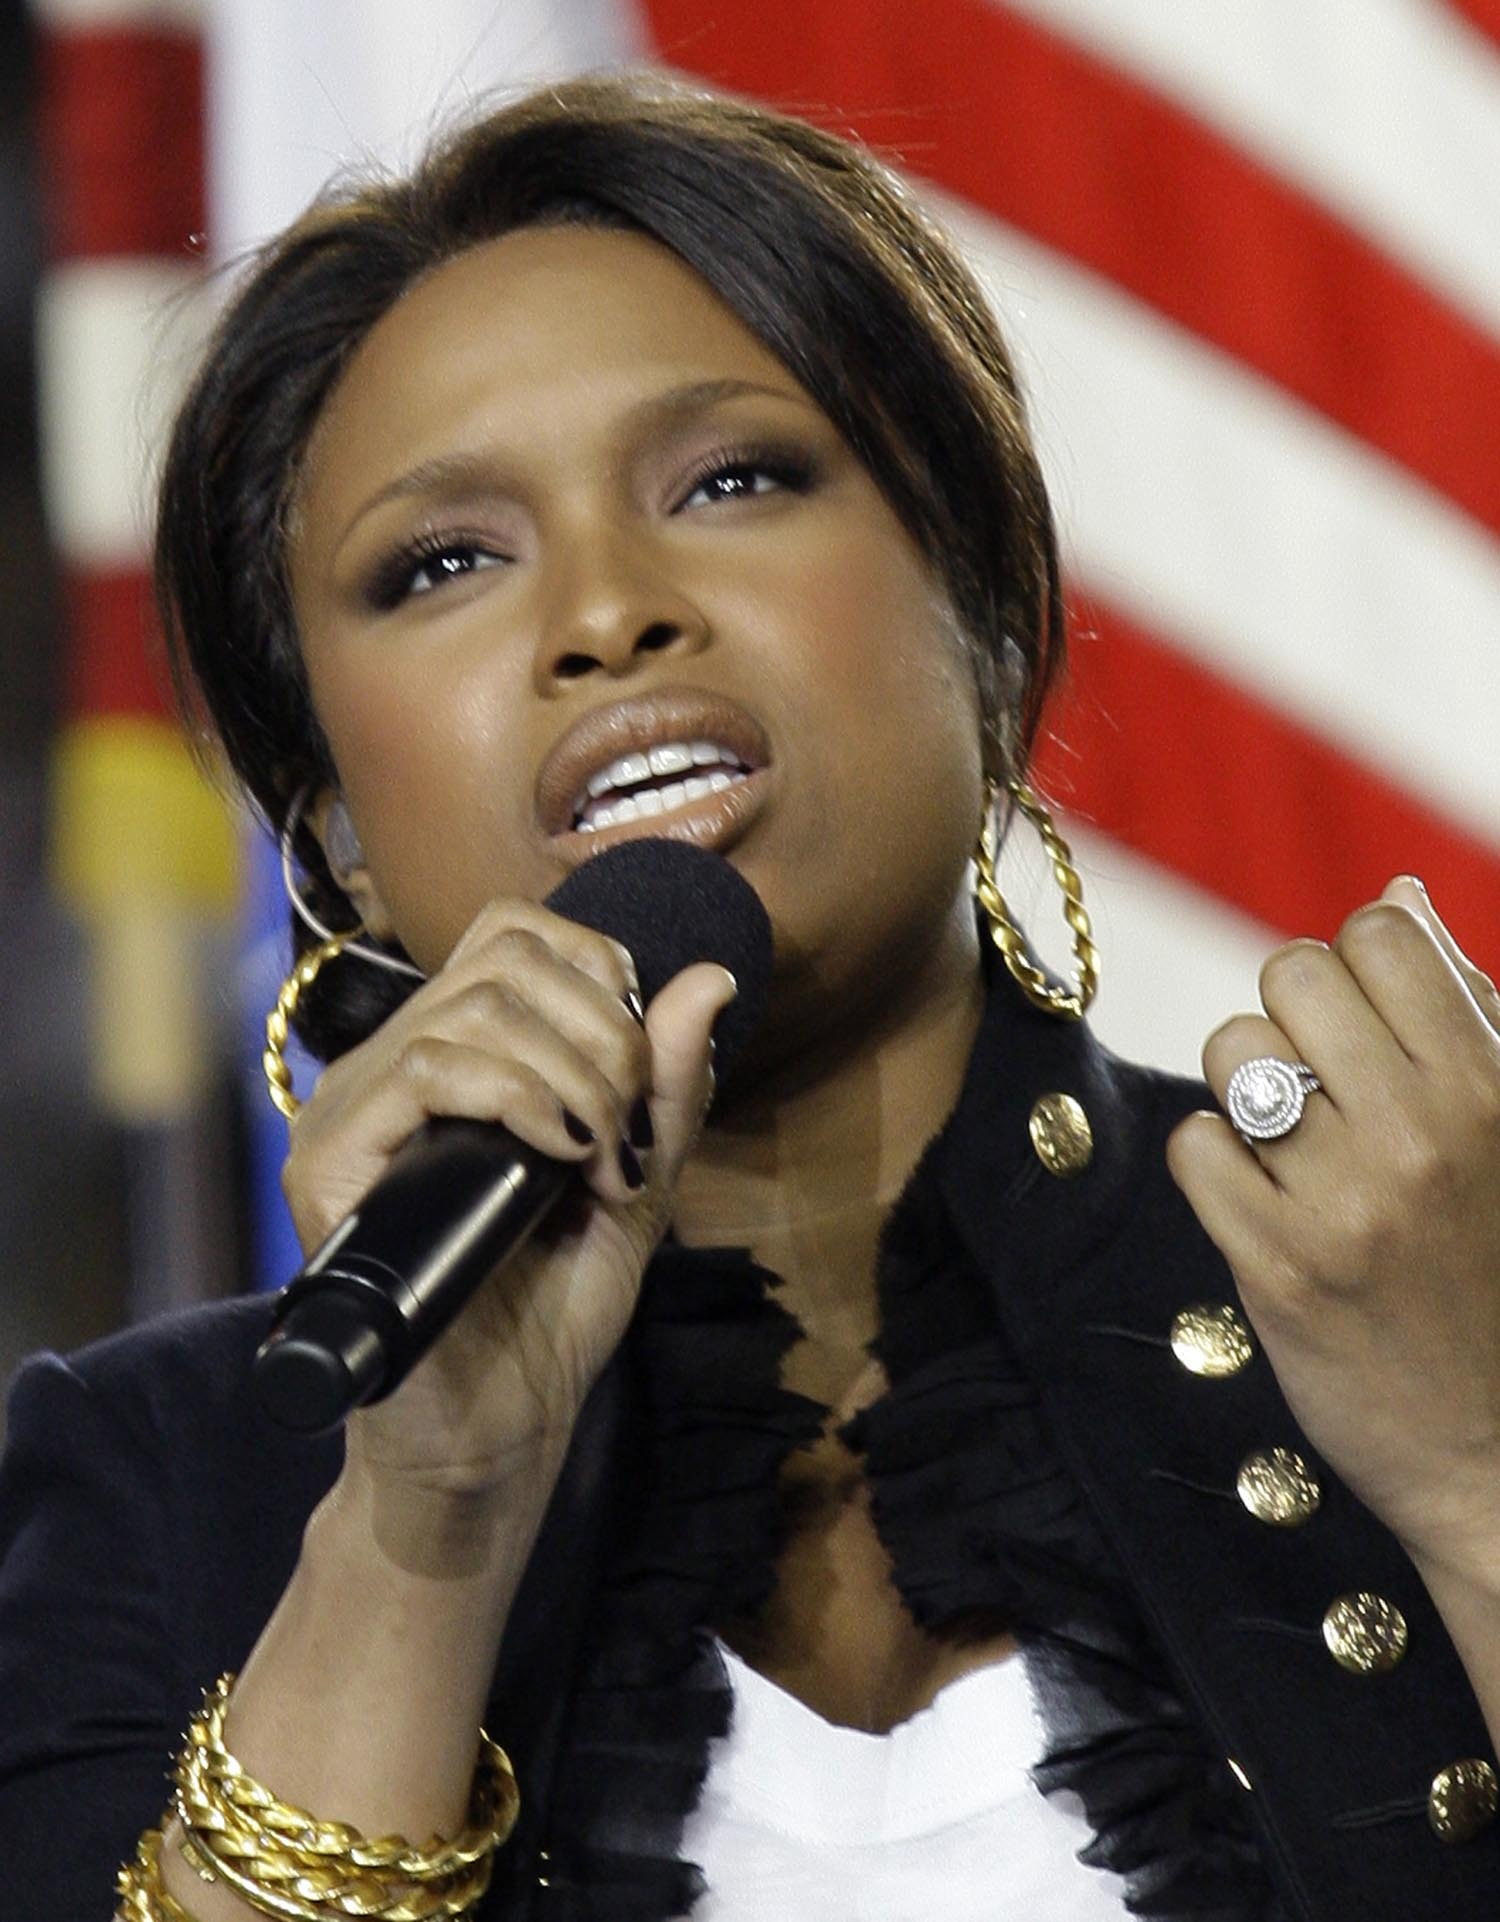 "<div class=""meta image-caption""><div class=""origin-logo origin-image ap""><span>AP</span></div><span class=""caption-text"">2009: Jennifer Hudson sings the national anthem before the the NFL Super Bowl XLIII football game between the Arizona Cardinals and the Pittsburgh Steelers, Sunday, Feb. 1, 2009. (AP Photo/David J. Phillip)</span></div>"